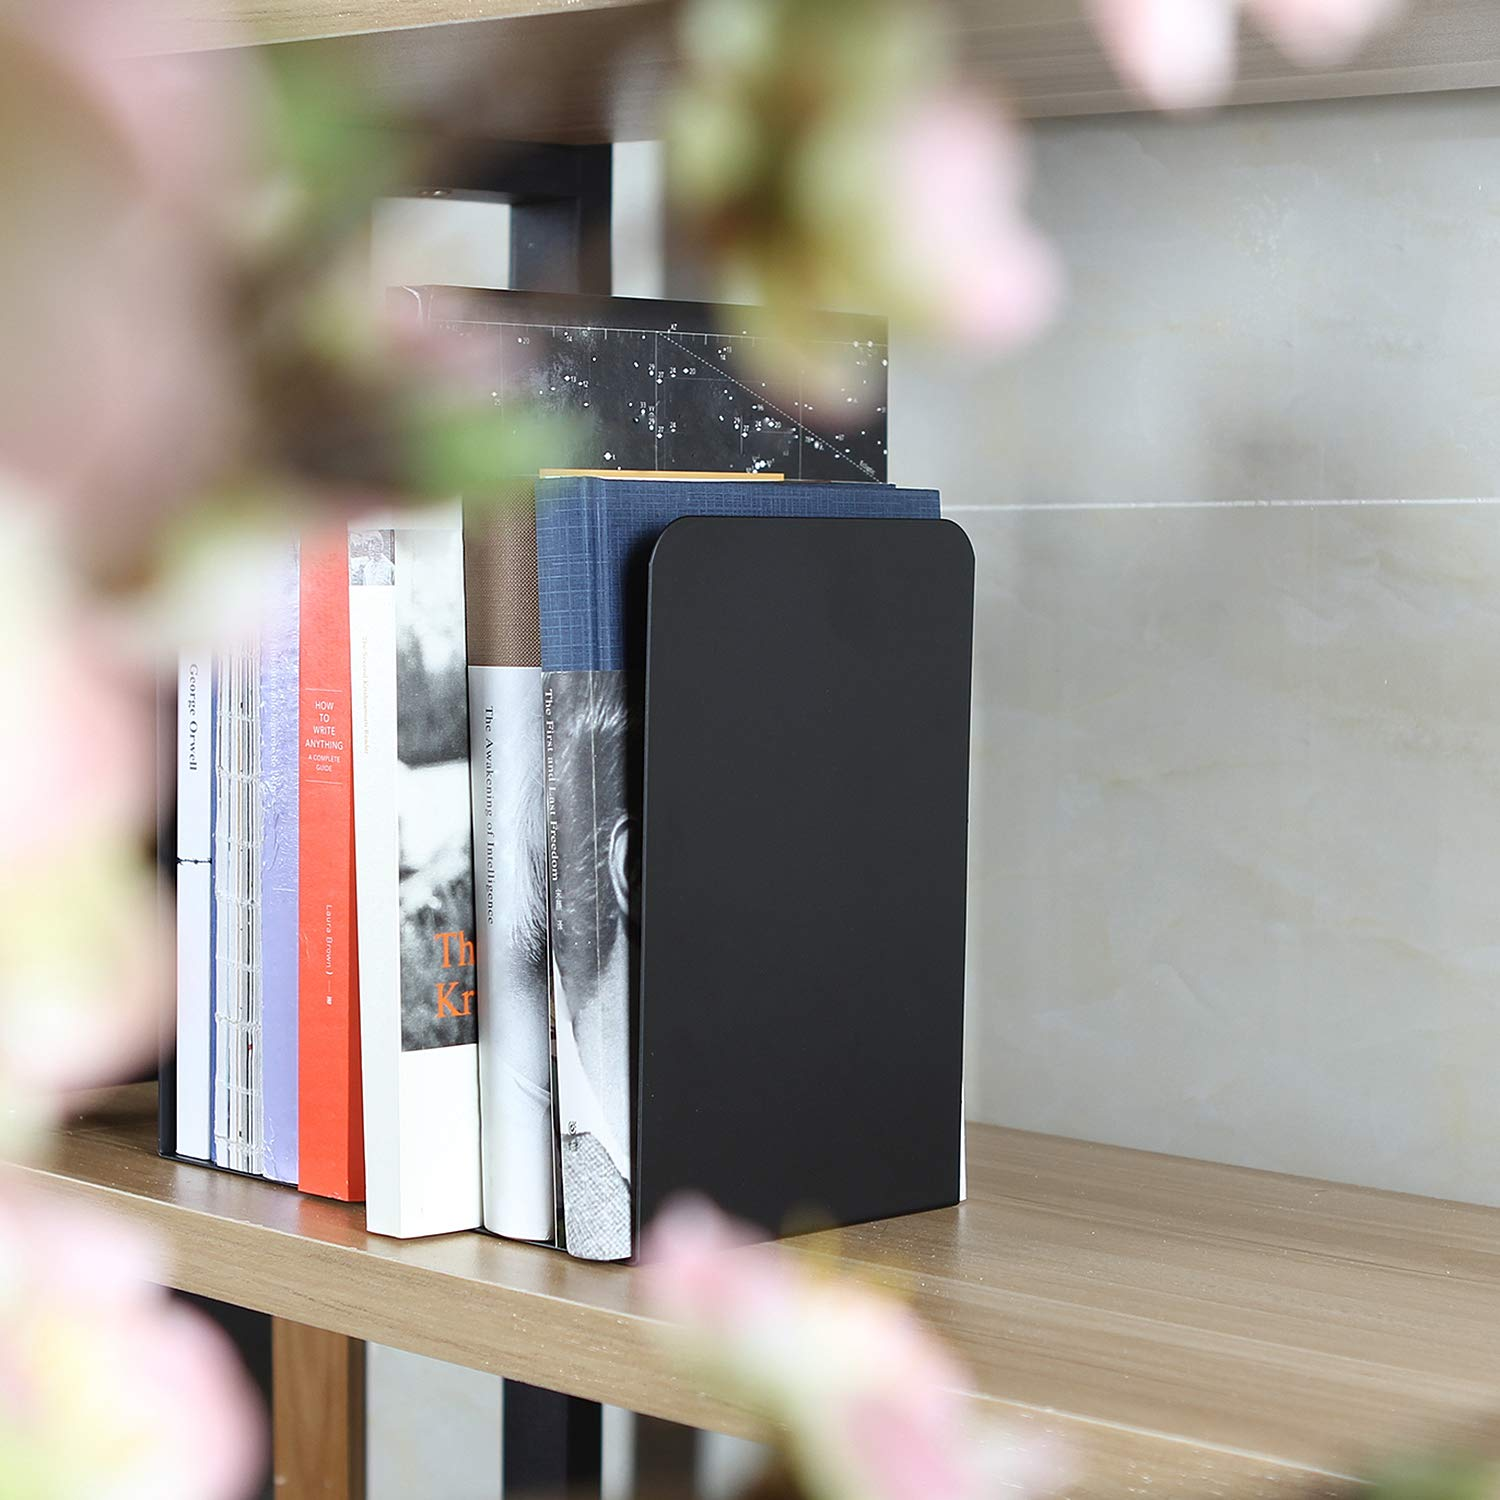 ABUFF 2 Pcs Larger Modern Bookends Black, 8 Inch Decorative Metal Nonskid Book Ends Supports for Books, Movies, DVDs, Magazines, Video Games, Standard, 8 X 3.9 X 5.3 Inch